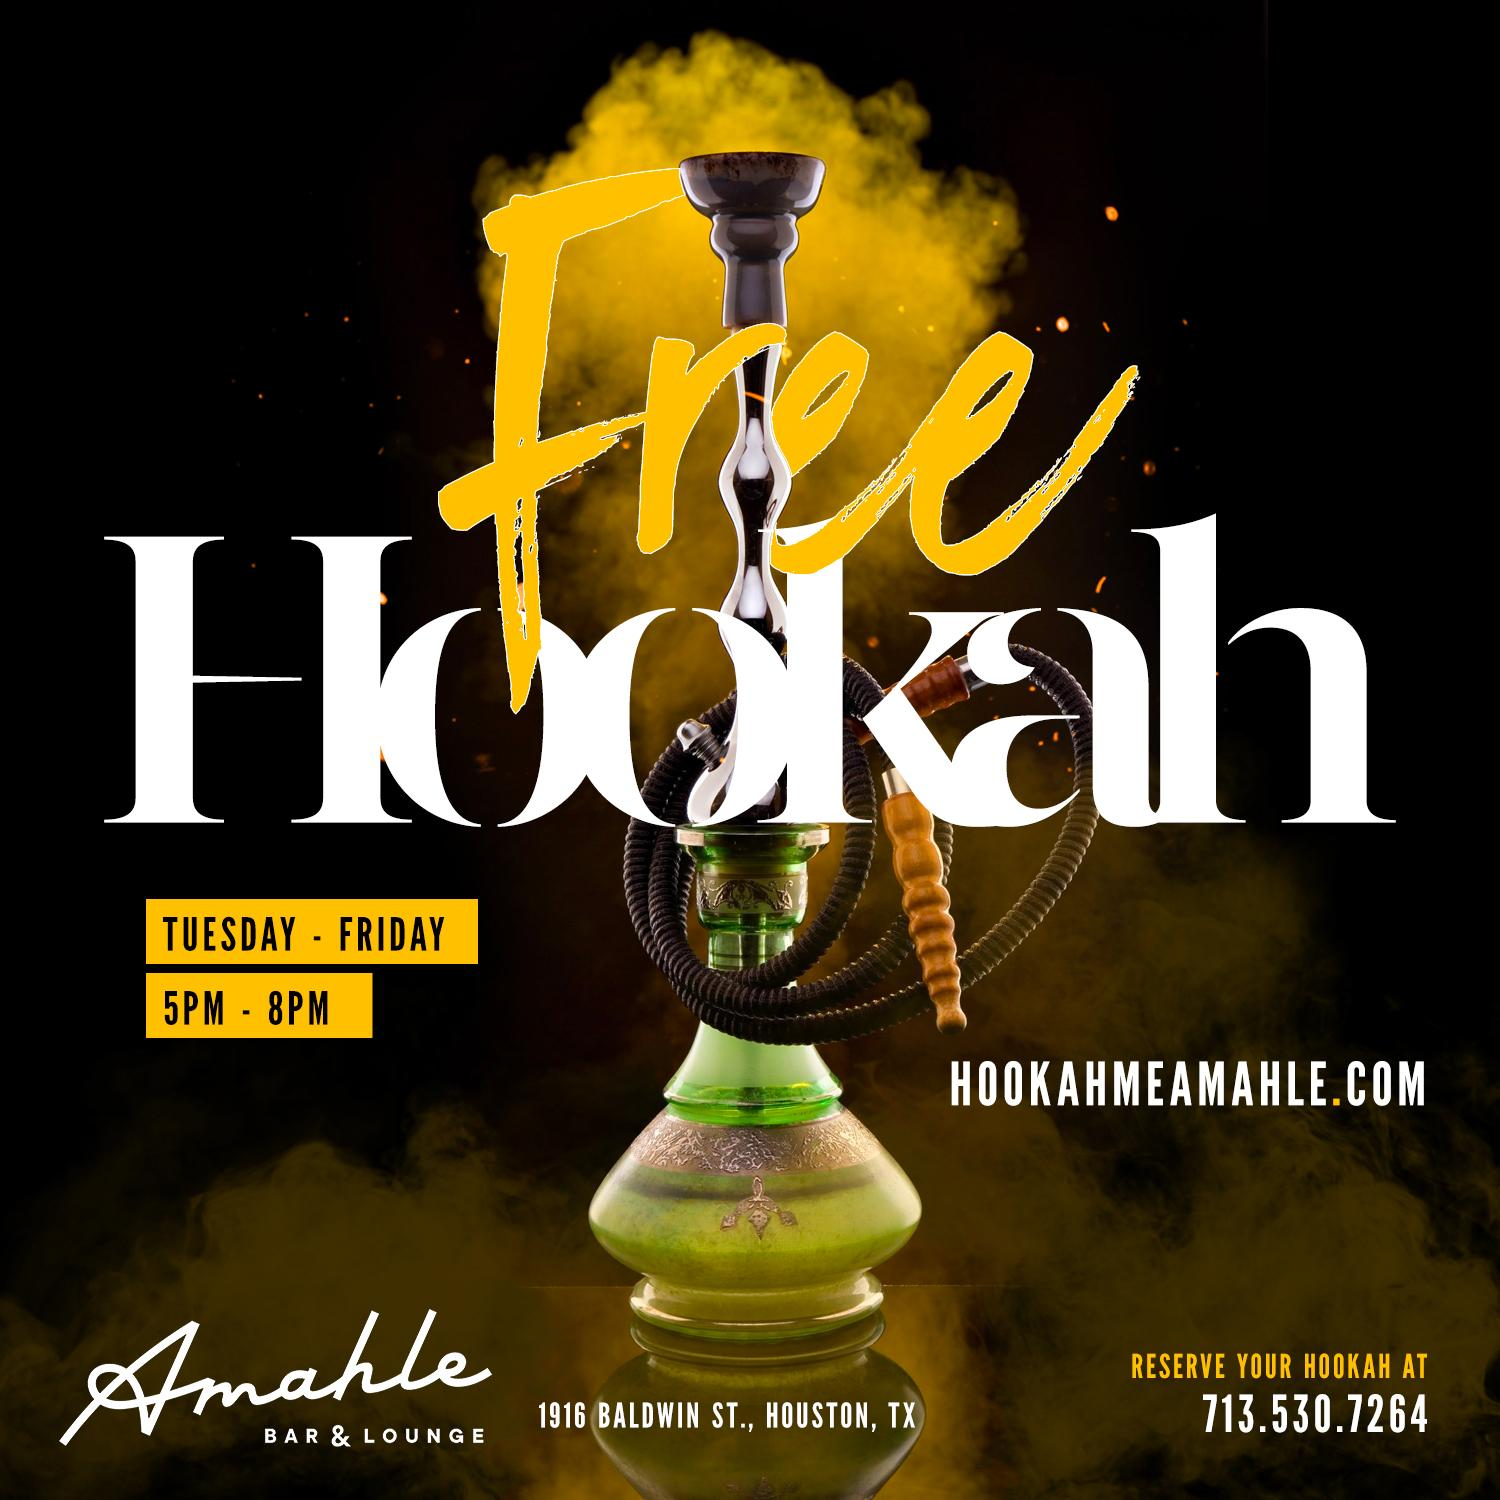 Free Hookah Every Tuesday - Friday at Amahle